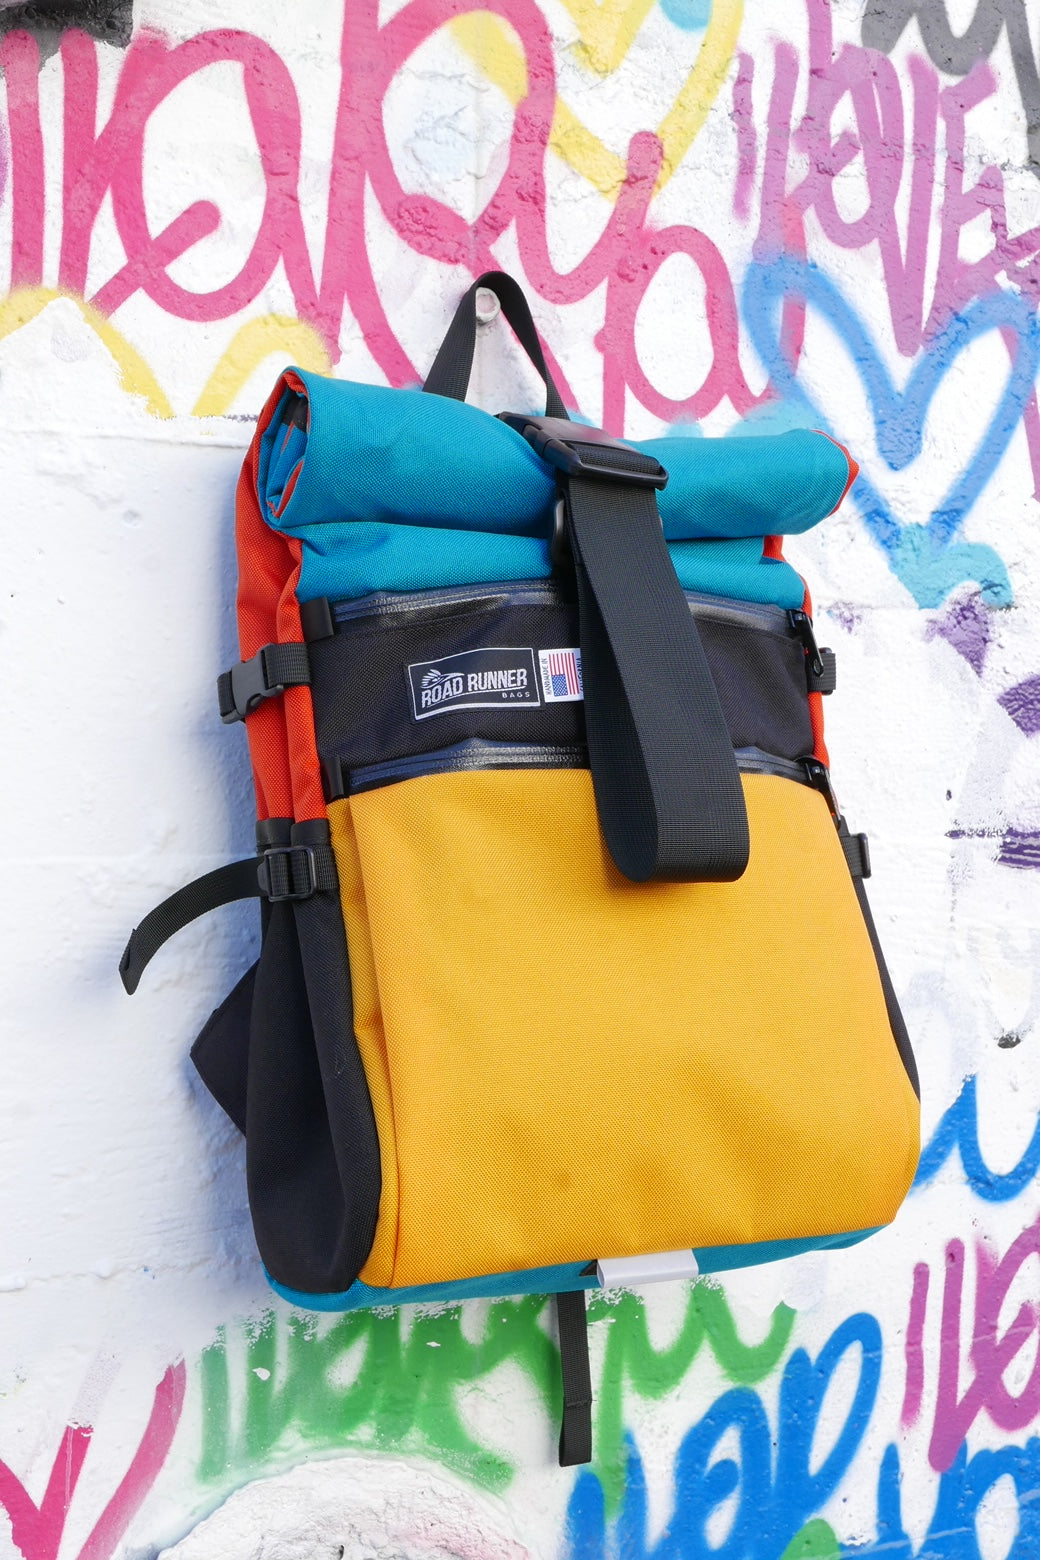 Road Runner Harlequin Bags